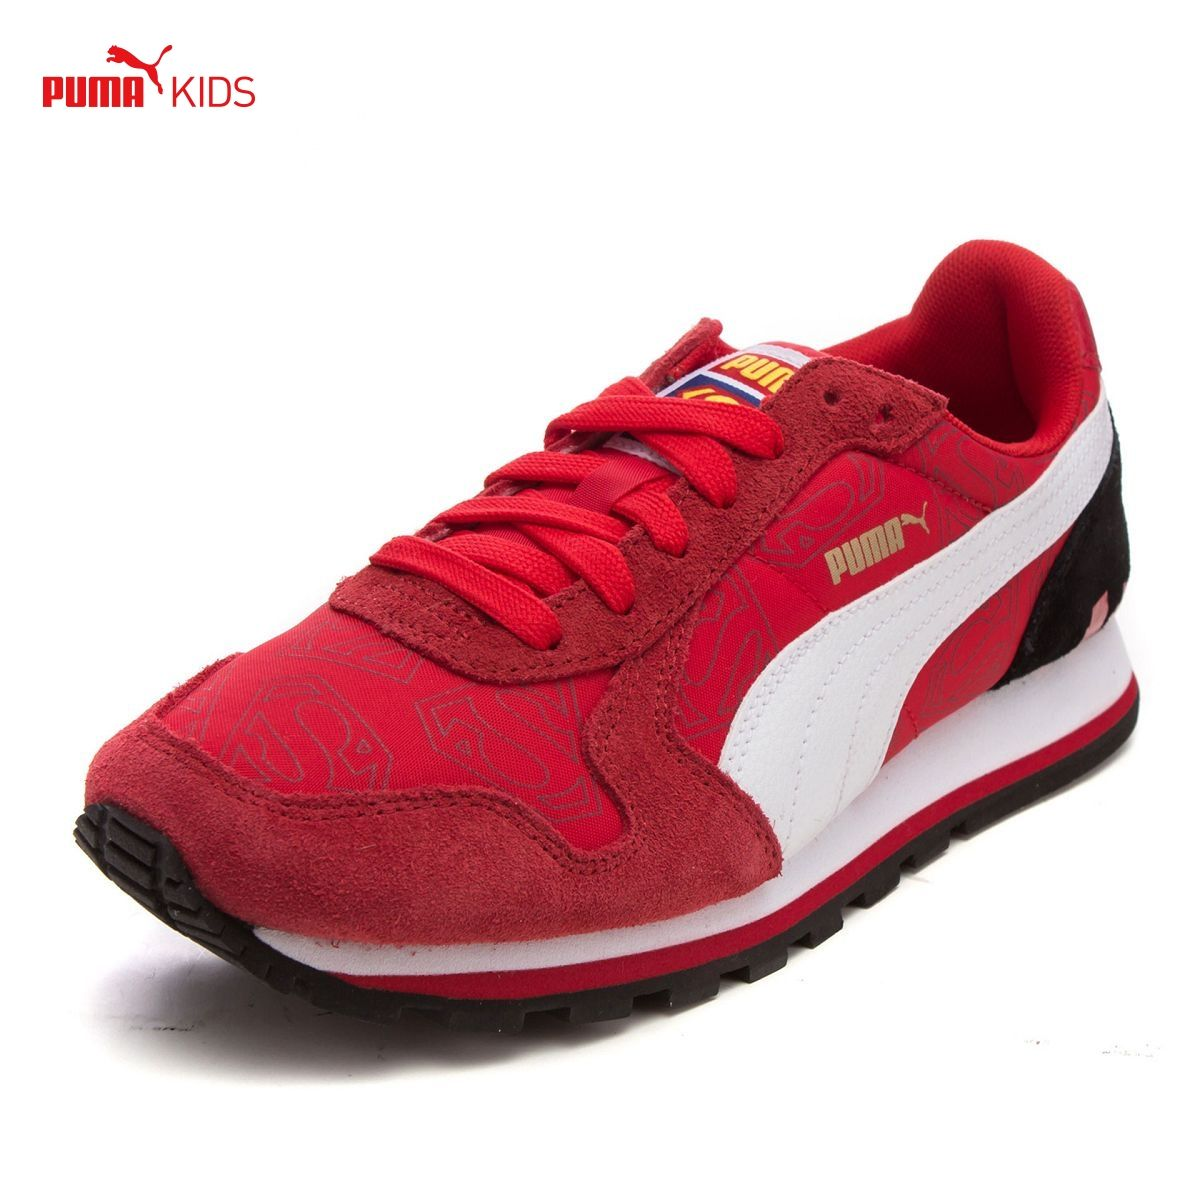 Buy Puma puma new fall shoes for boys and girls children lace breathable  sports and leisure shoes running shoes in Cheap Price on m.alibaba.com 0a4344232